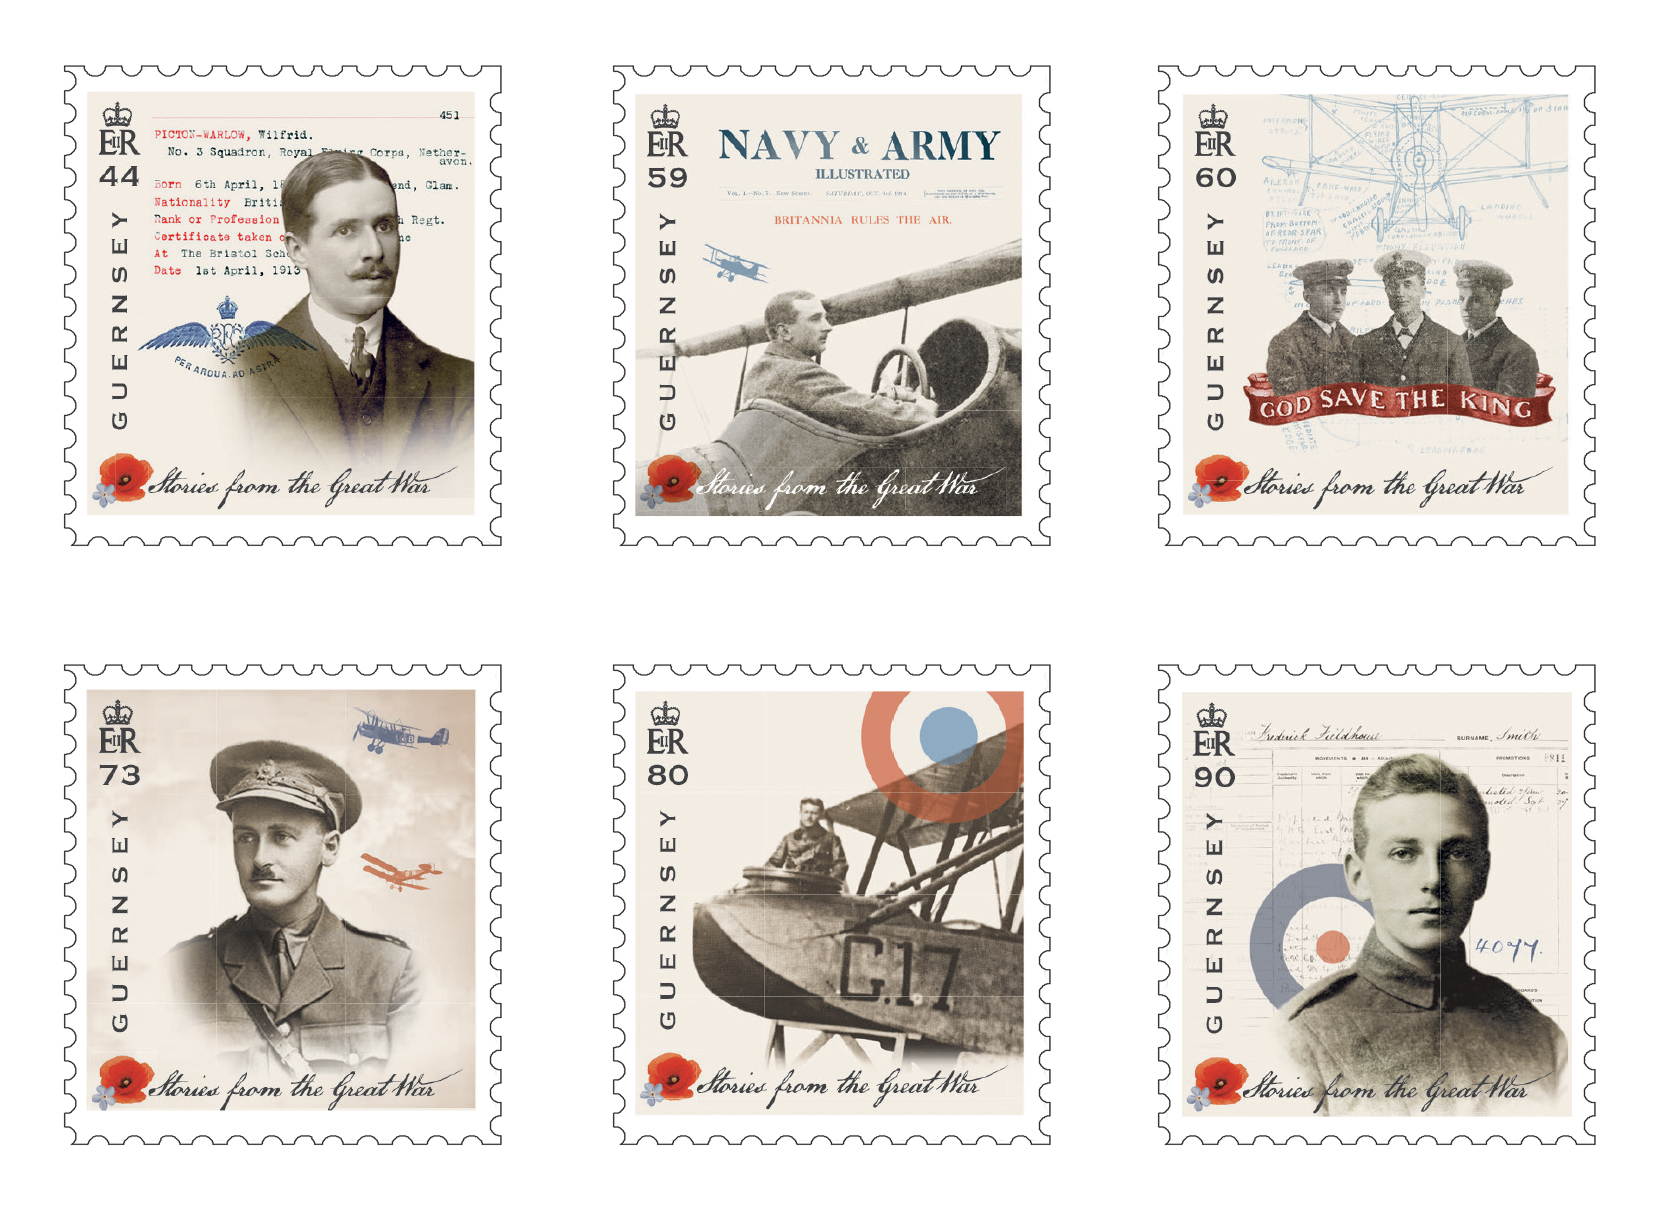 Guernsey Post commemorates Centenary of The Great War